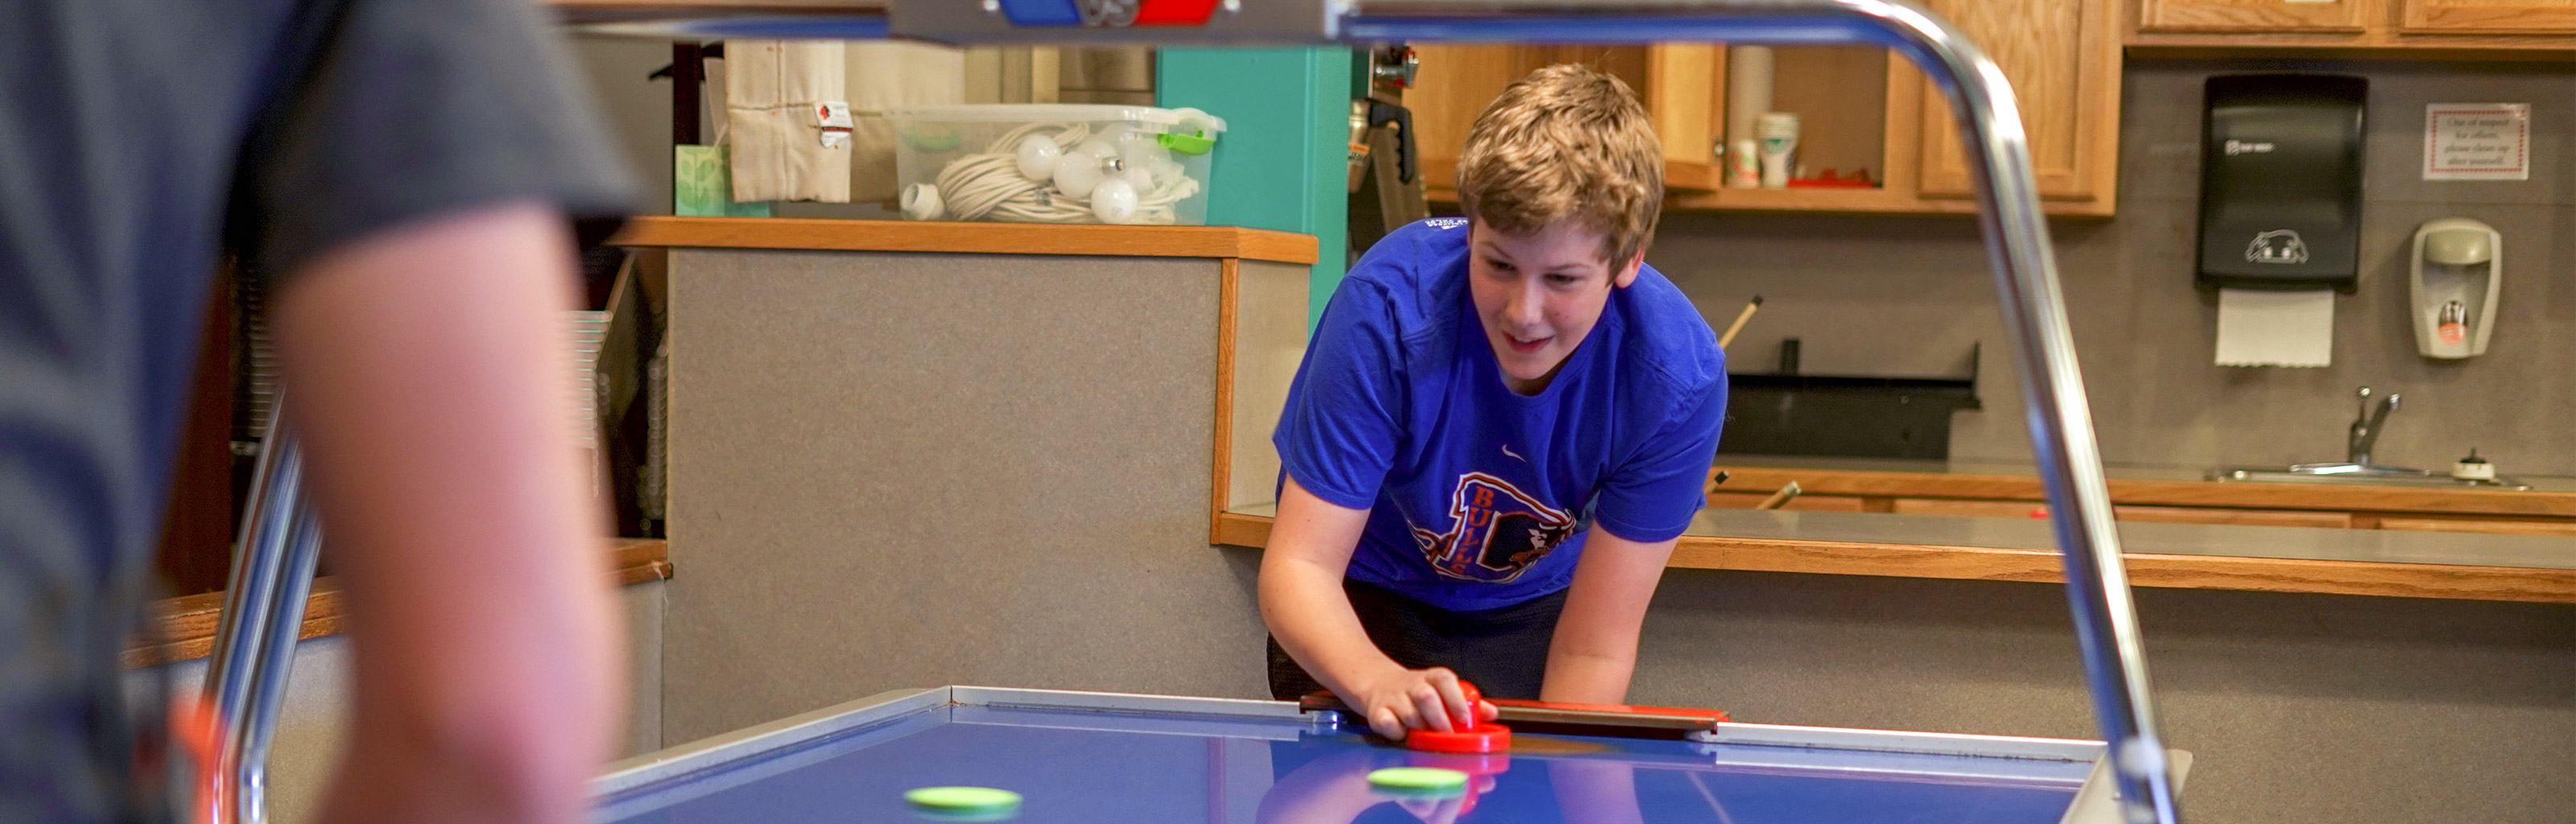 students air hockey